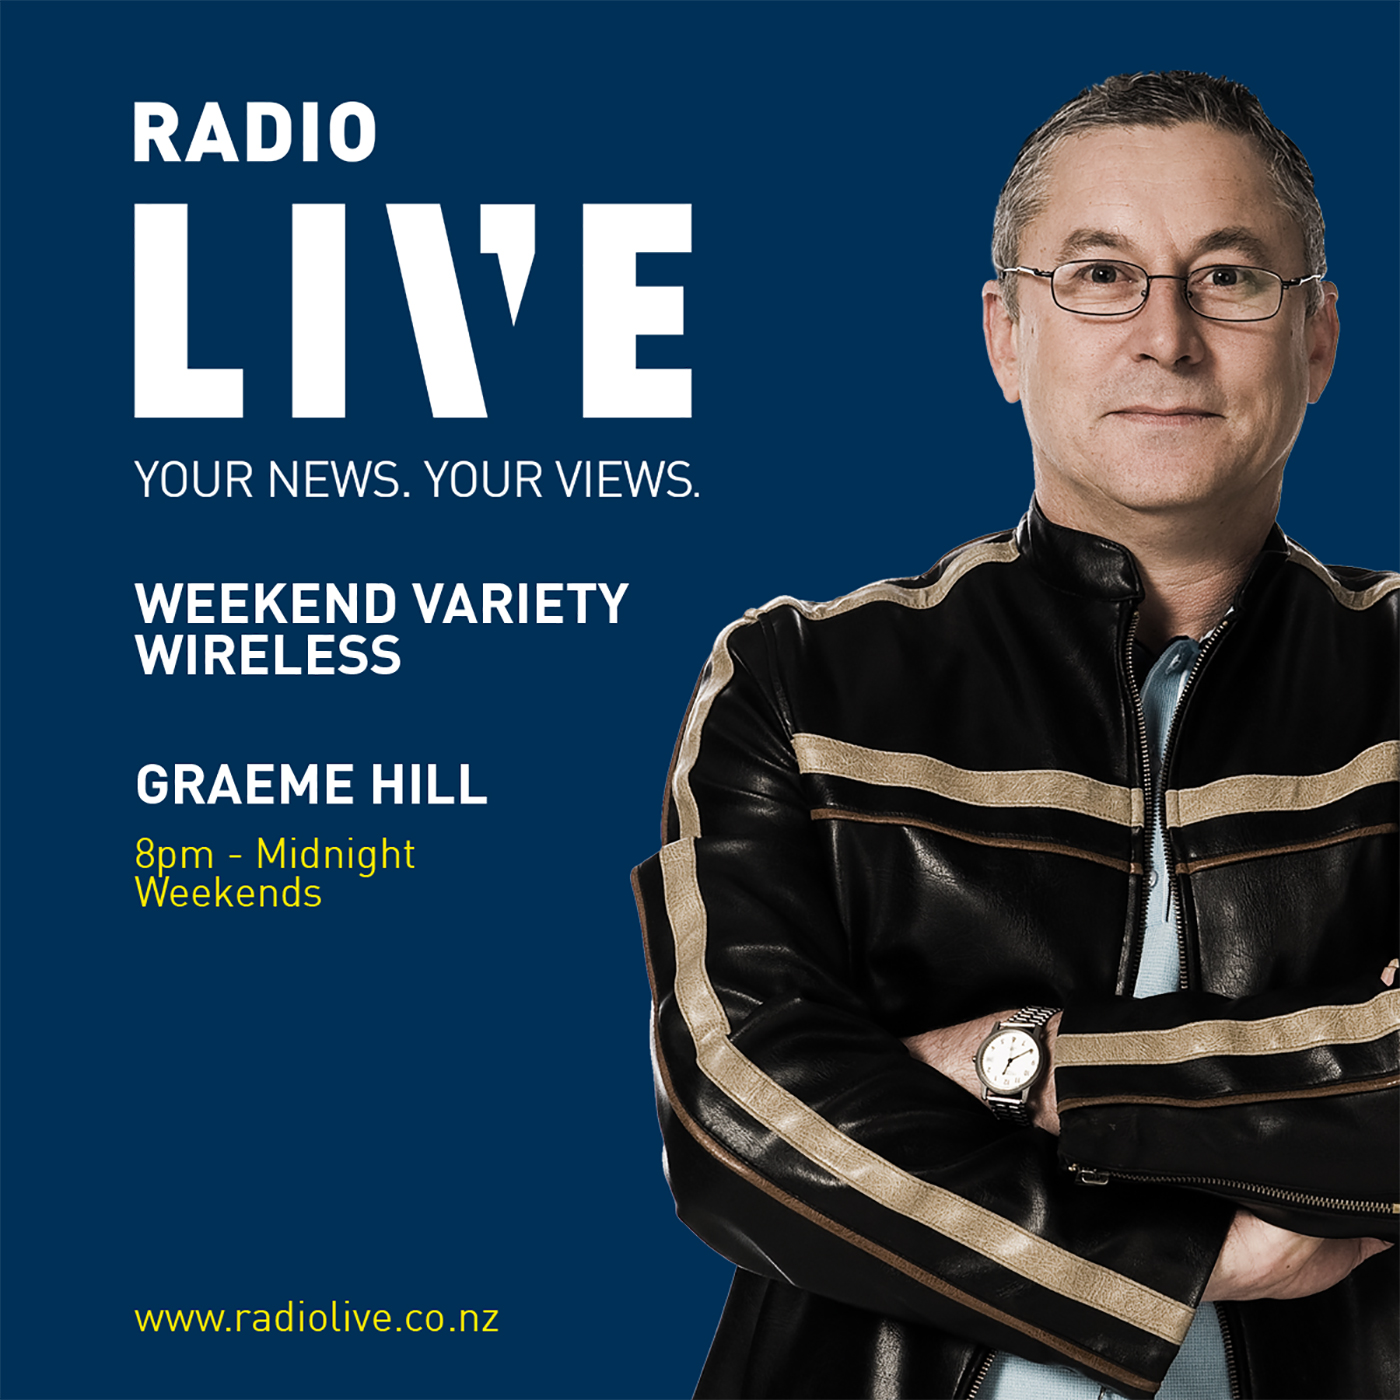 Weekend Variety Wireless with Graeme Hill on RadioLIVE